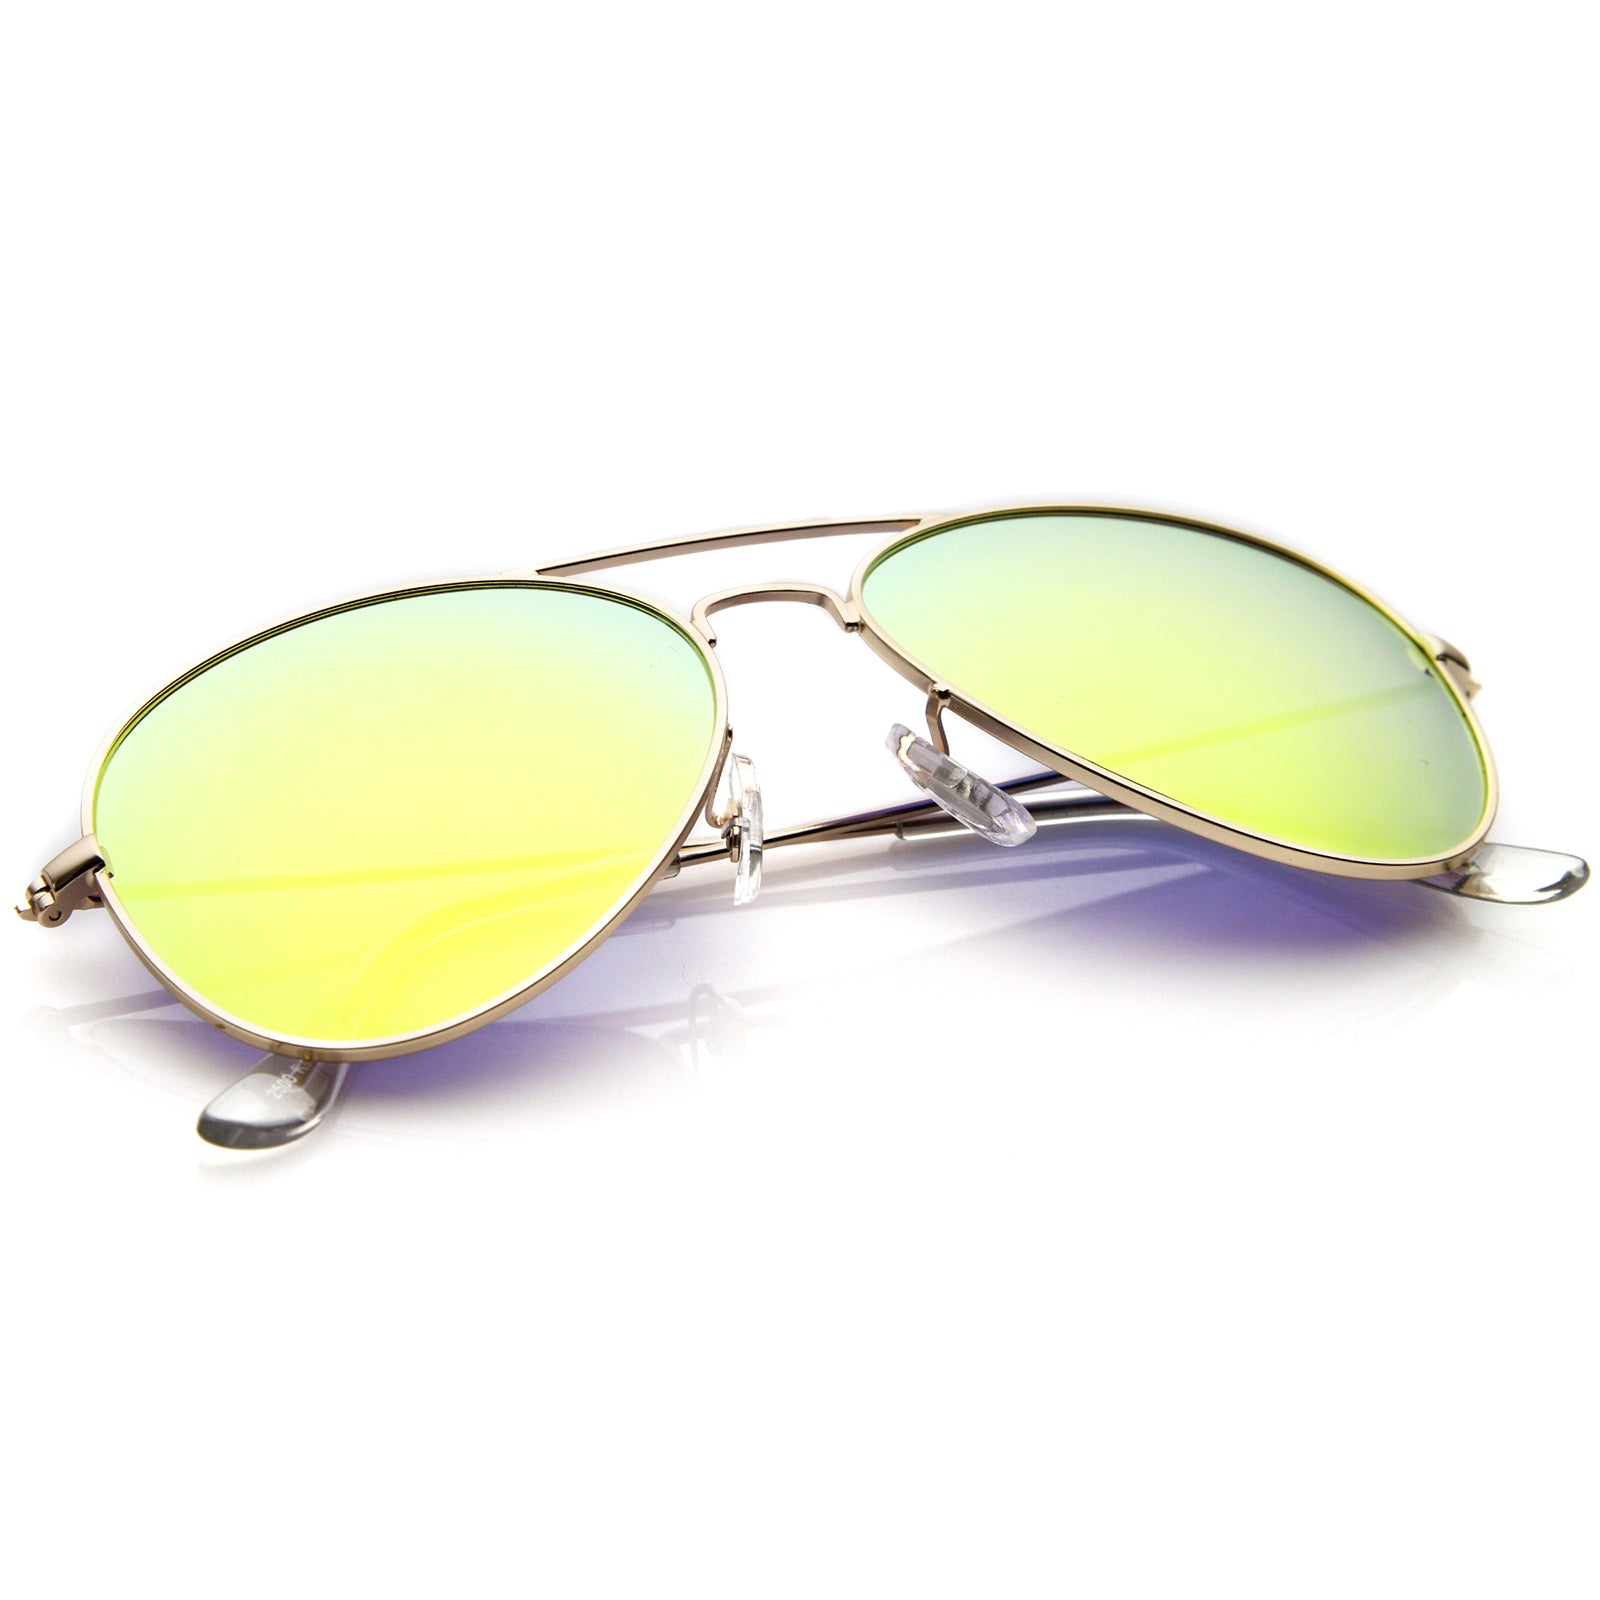 Premium Nickel Plated Frame Multi-Coated Mirror Lens Aviator Sunglasses 59mm - sunglass.la - 16